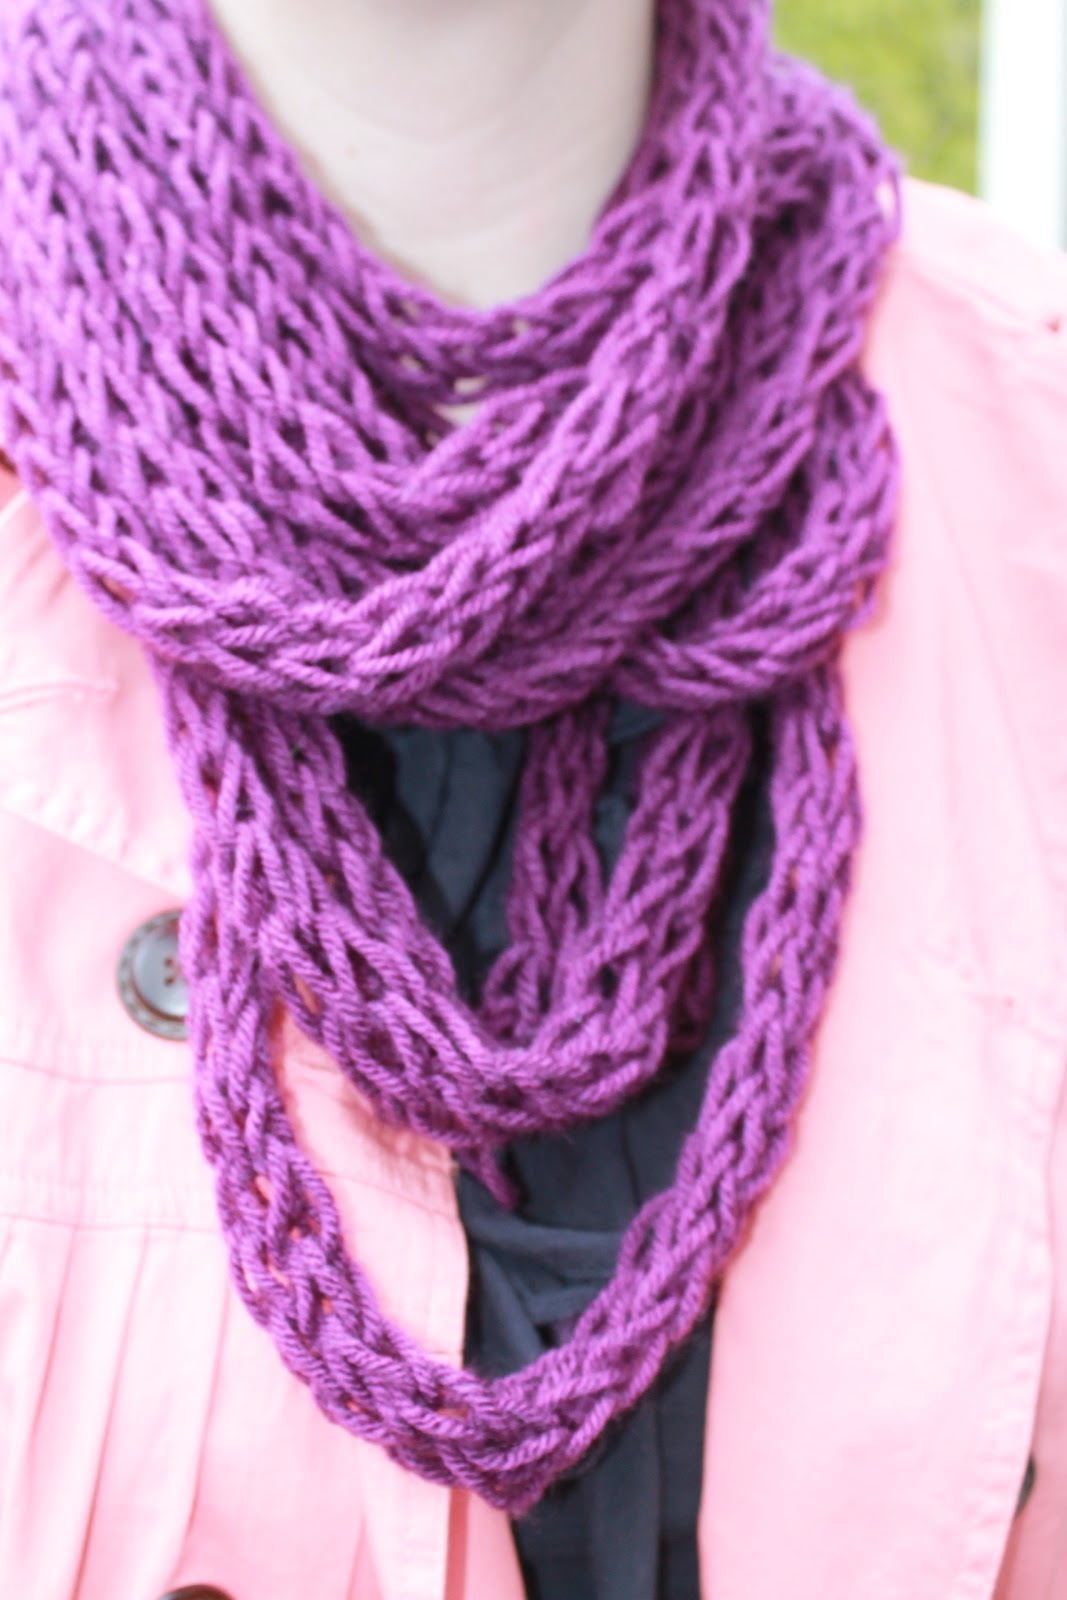 10 Finger Knitting Scarf Patterns - The Funky Stitch